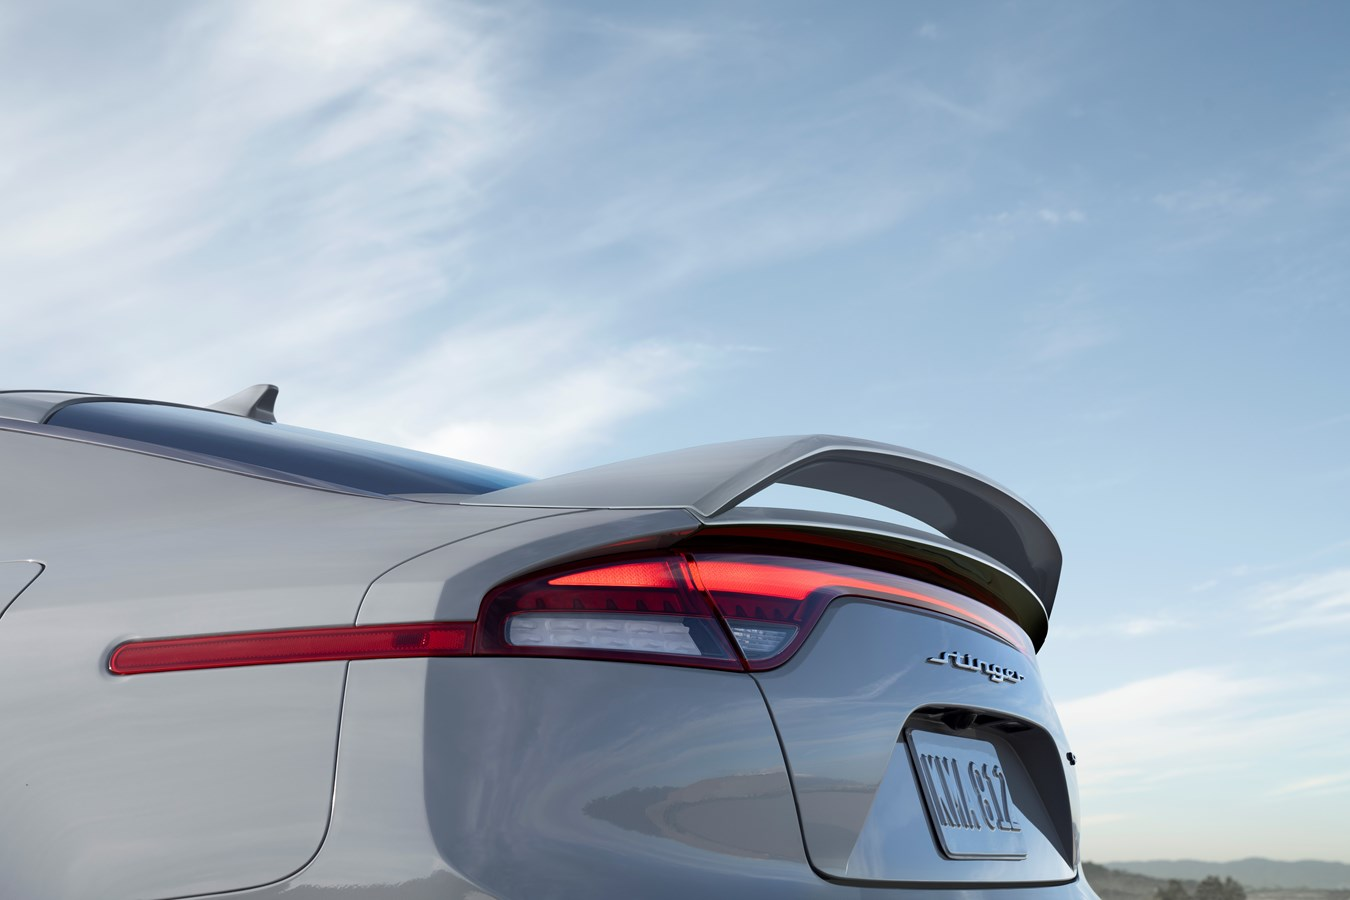 2022 Stinger Scorpion Special Edition rear wing